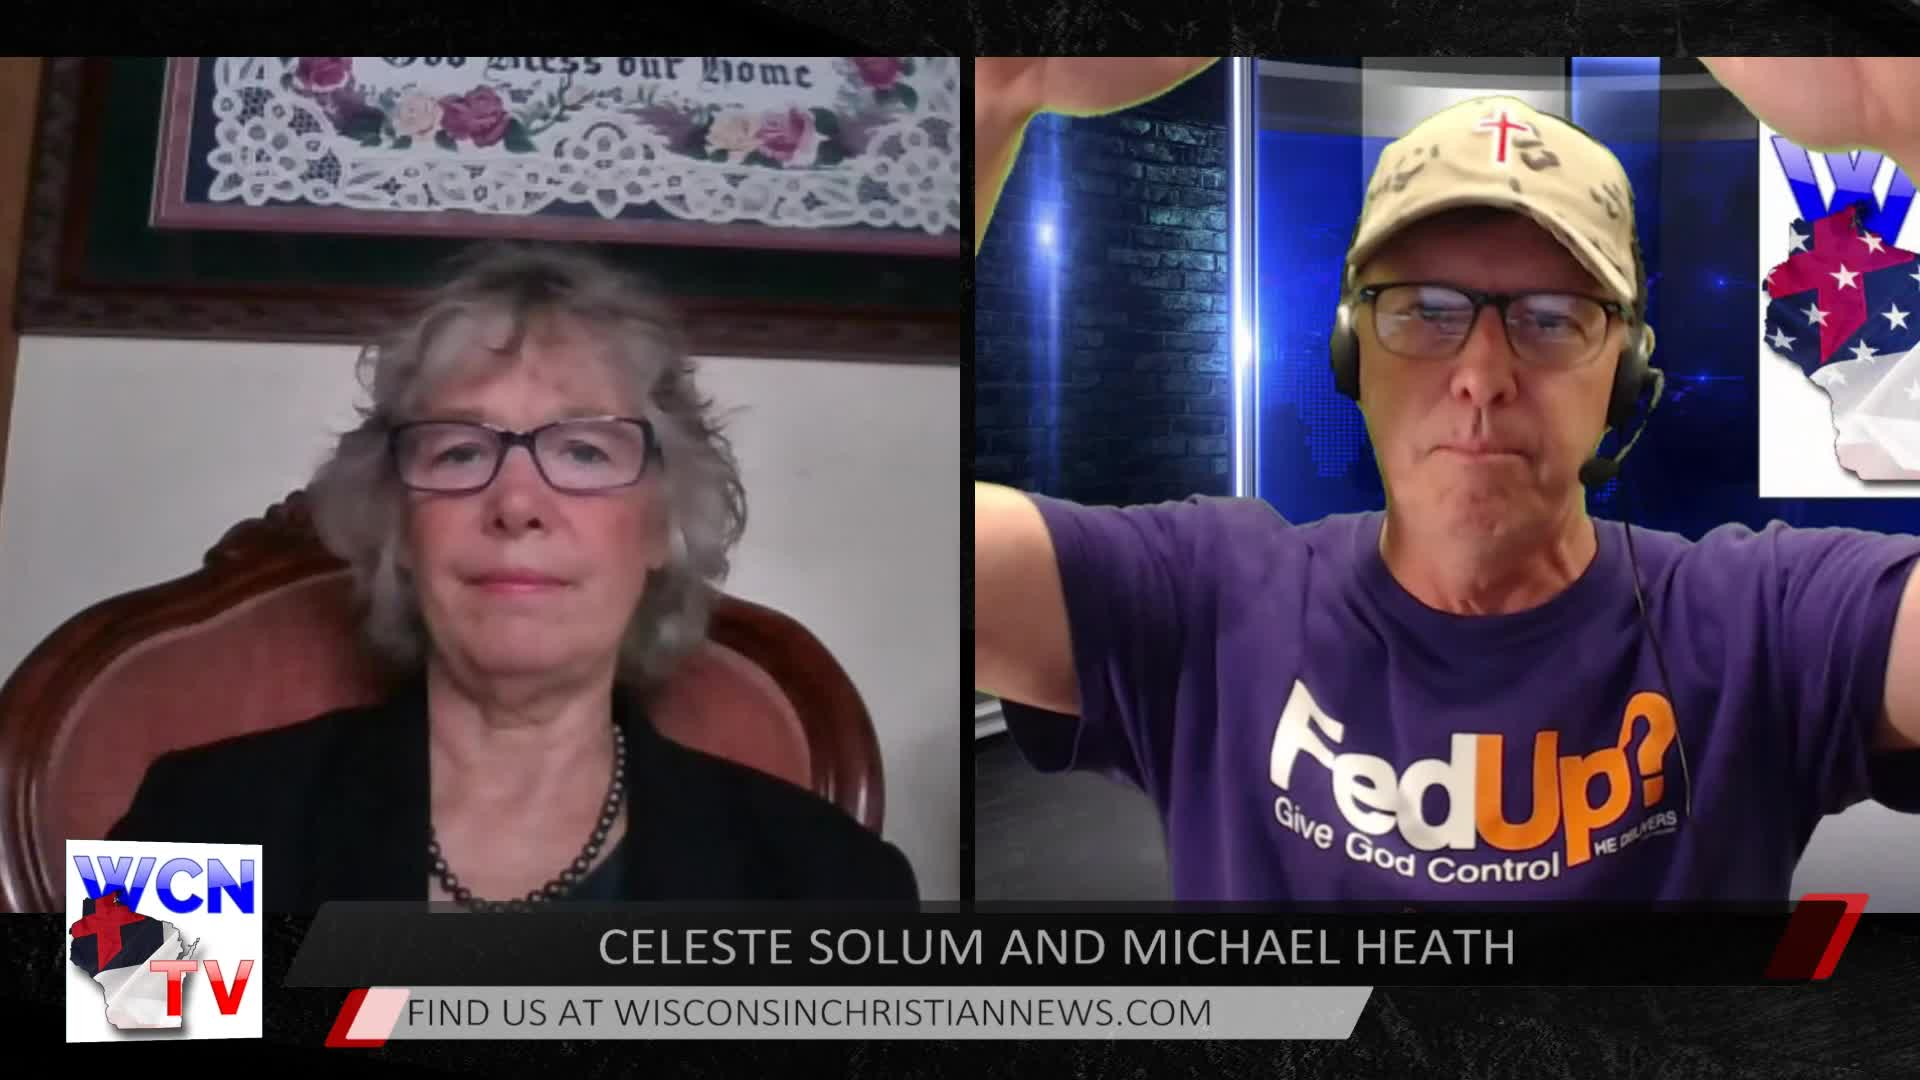 WCN-TV September 9, 2020 - with Guest Host Michael Heath and Celeste Solum